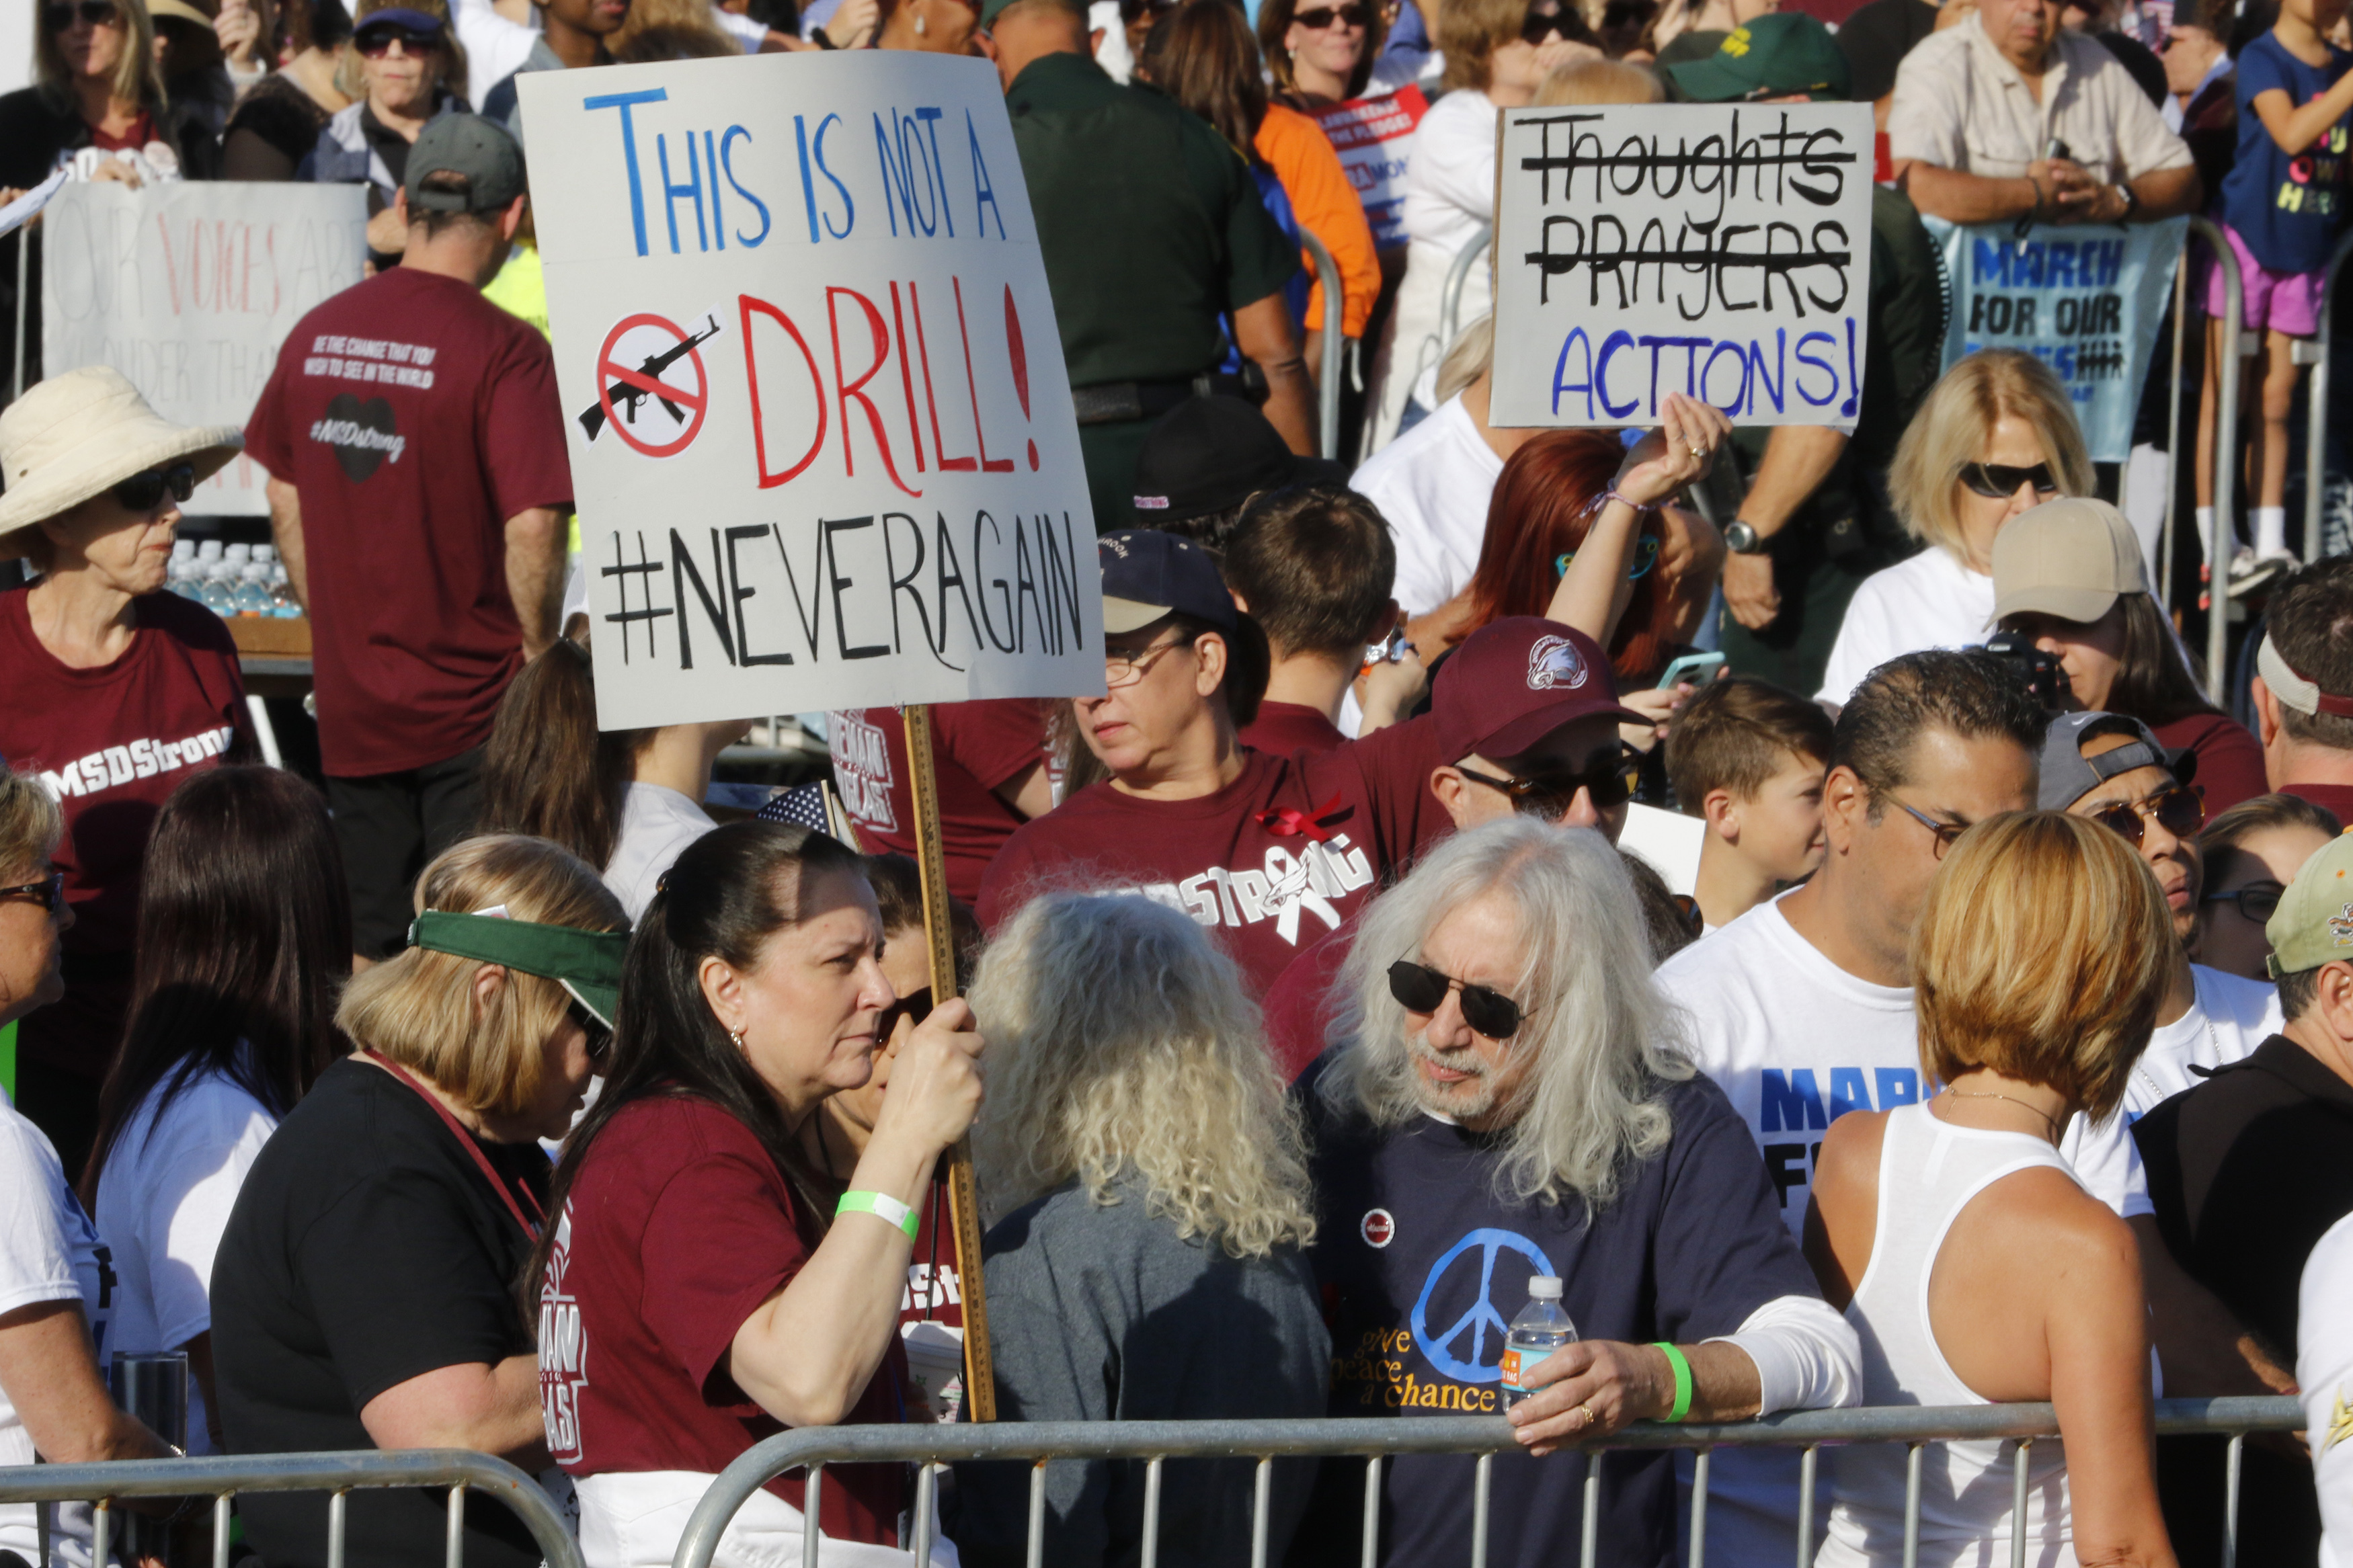 <div class='meta'><div class='origin-logo' data-origin='AP'></div><span class='caption-text' data-credit='AP Photo/Joe Skipper'>Participants gather during the March For Our Lives event, Saturday, March 24, 2018, in Parkland, Fla.</span></div>